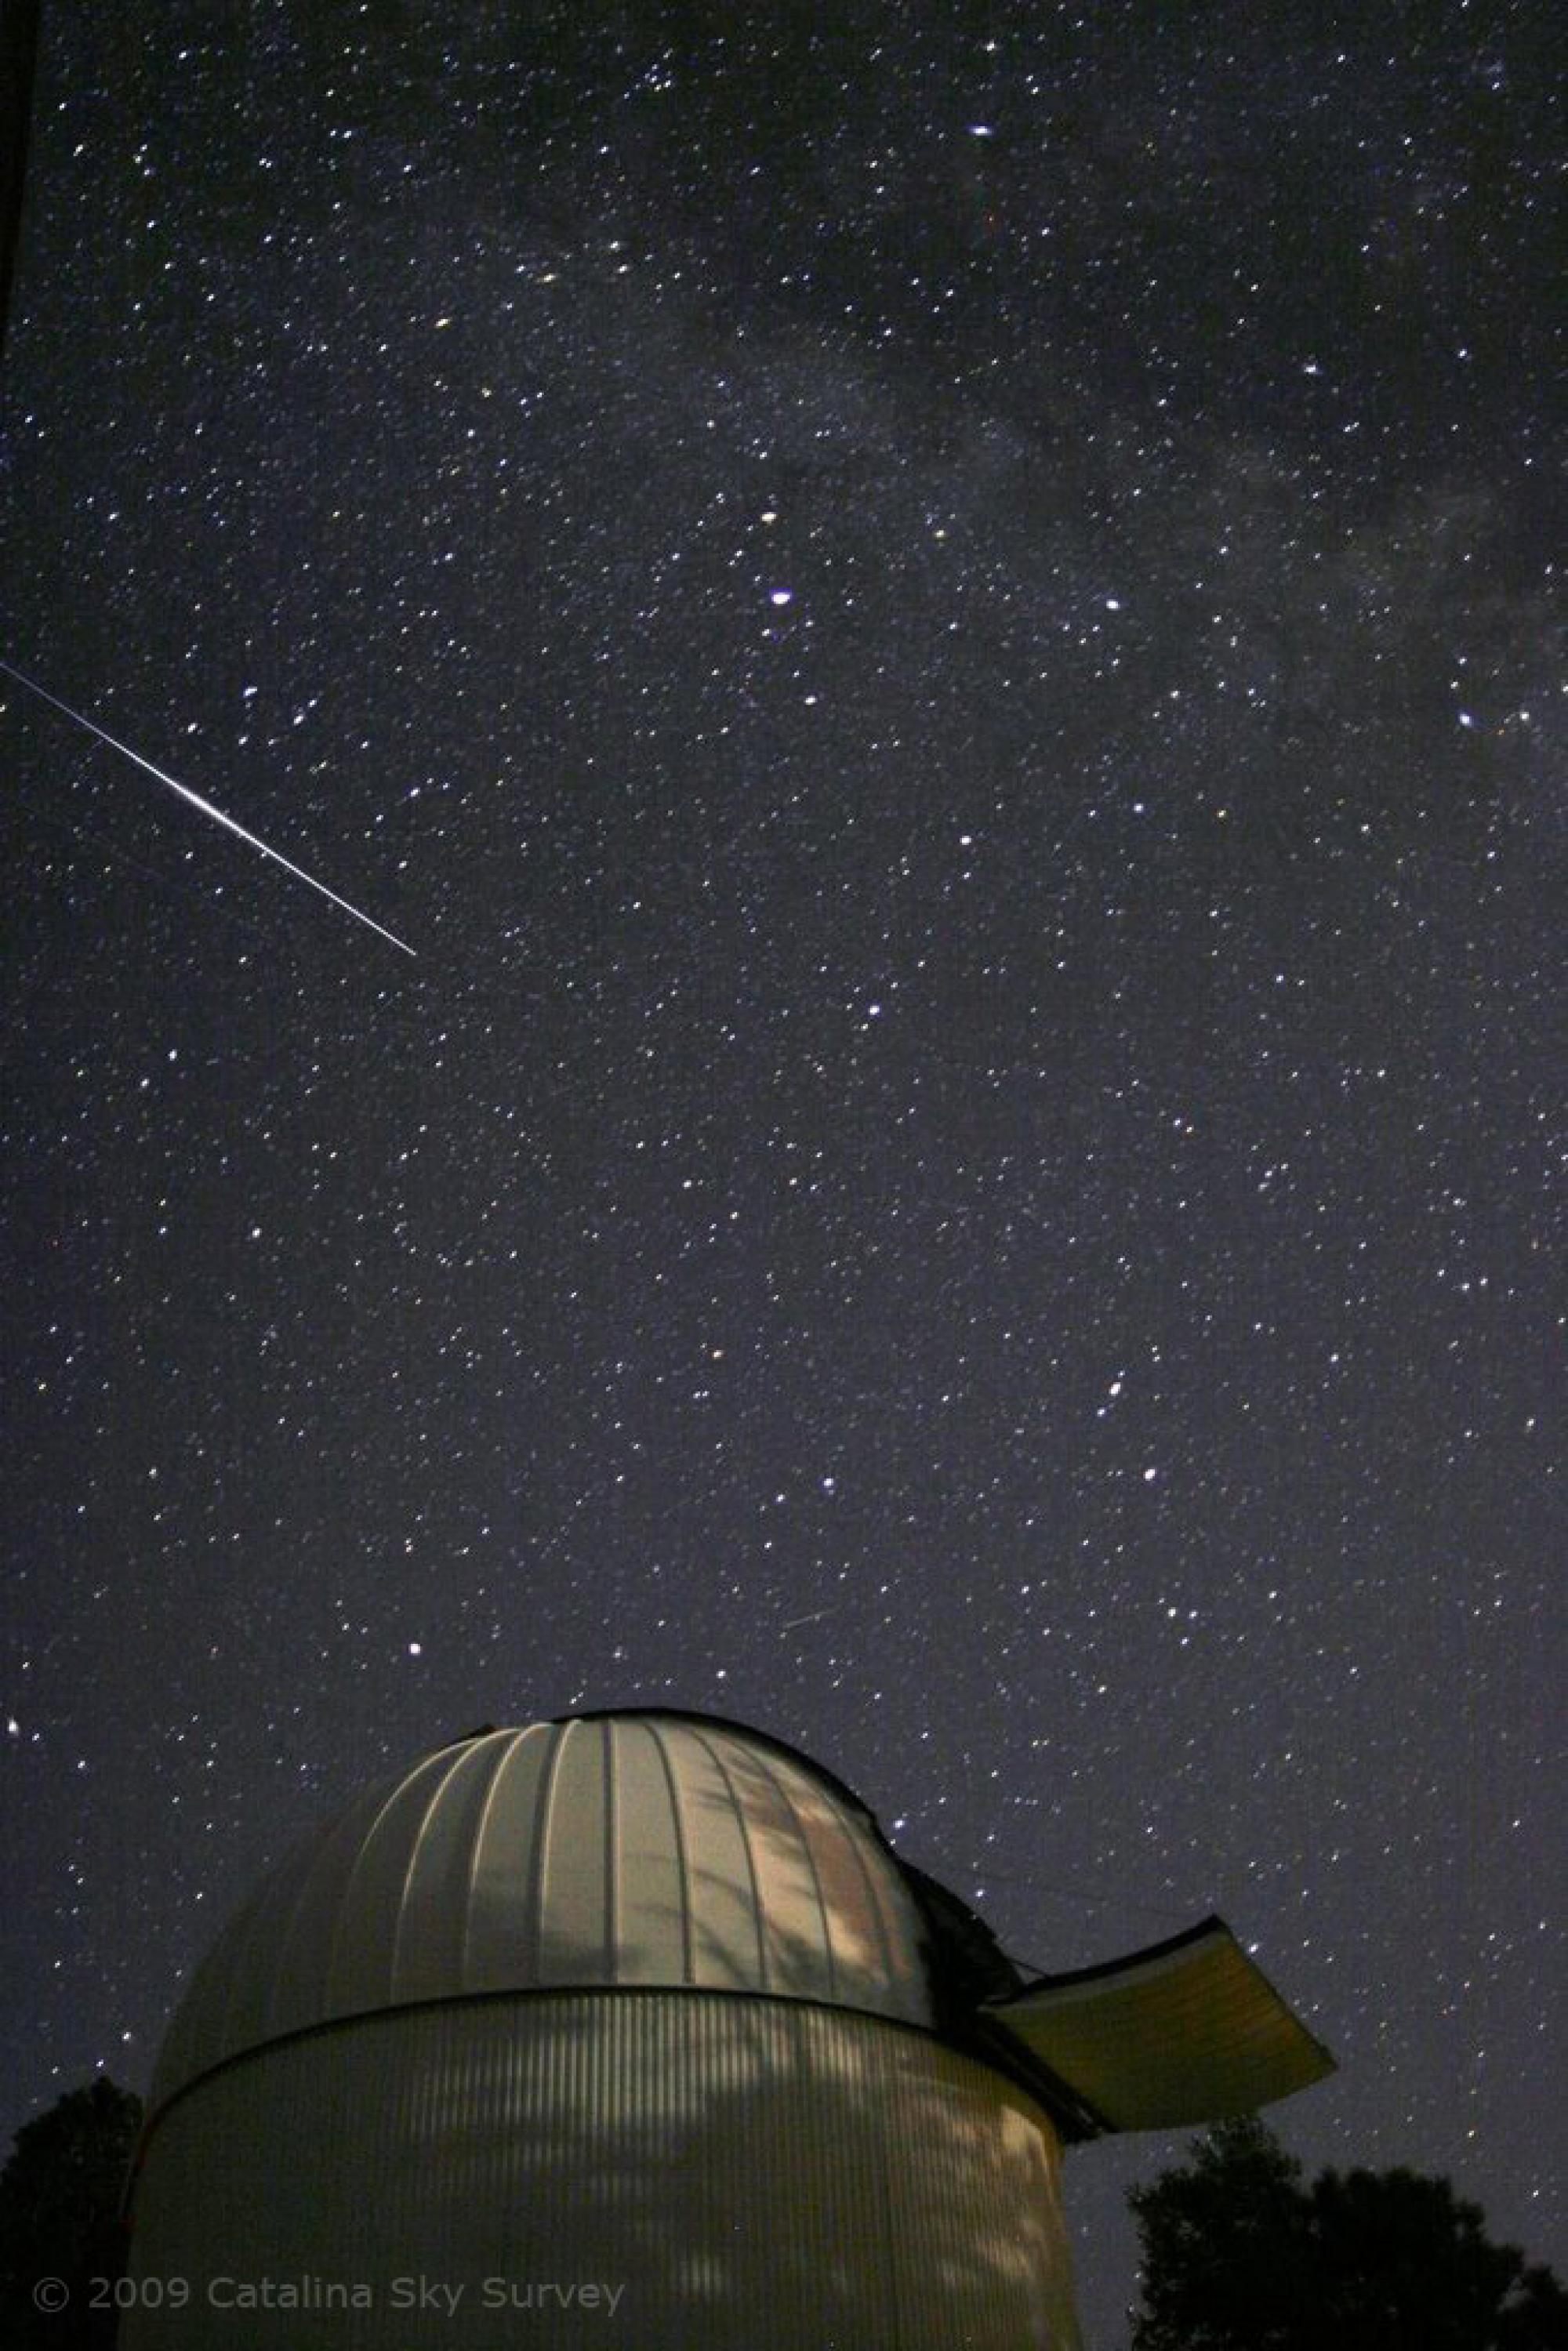 A meteor streaks through a starry sky above the Catalina Sky Survey Schmidt Telescope located on Mt. Bigelow in the Catalina Mountains just north of Tucson, Ariz.